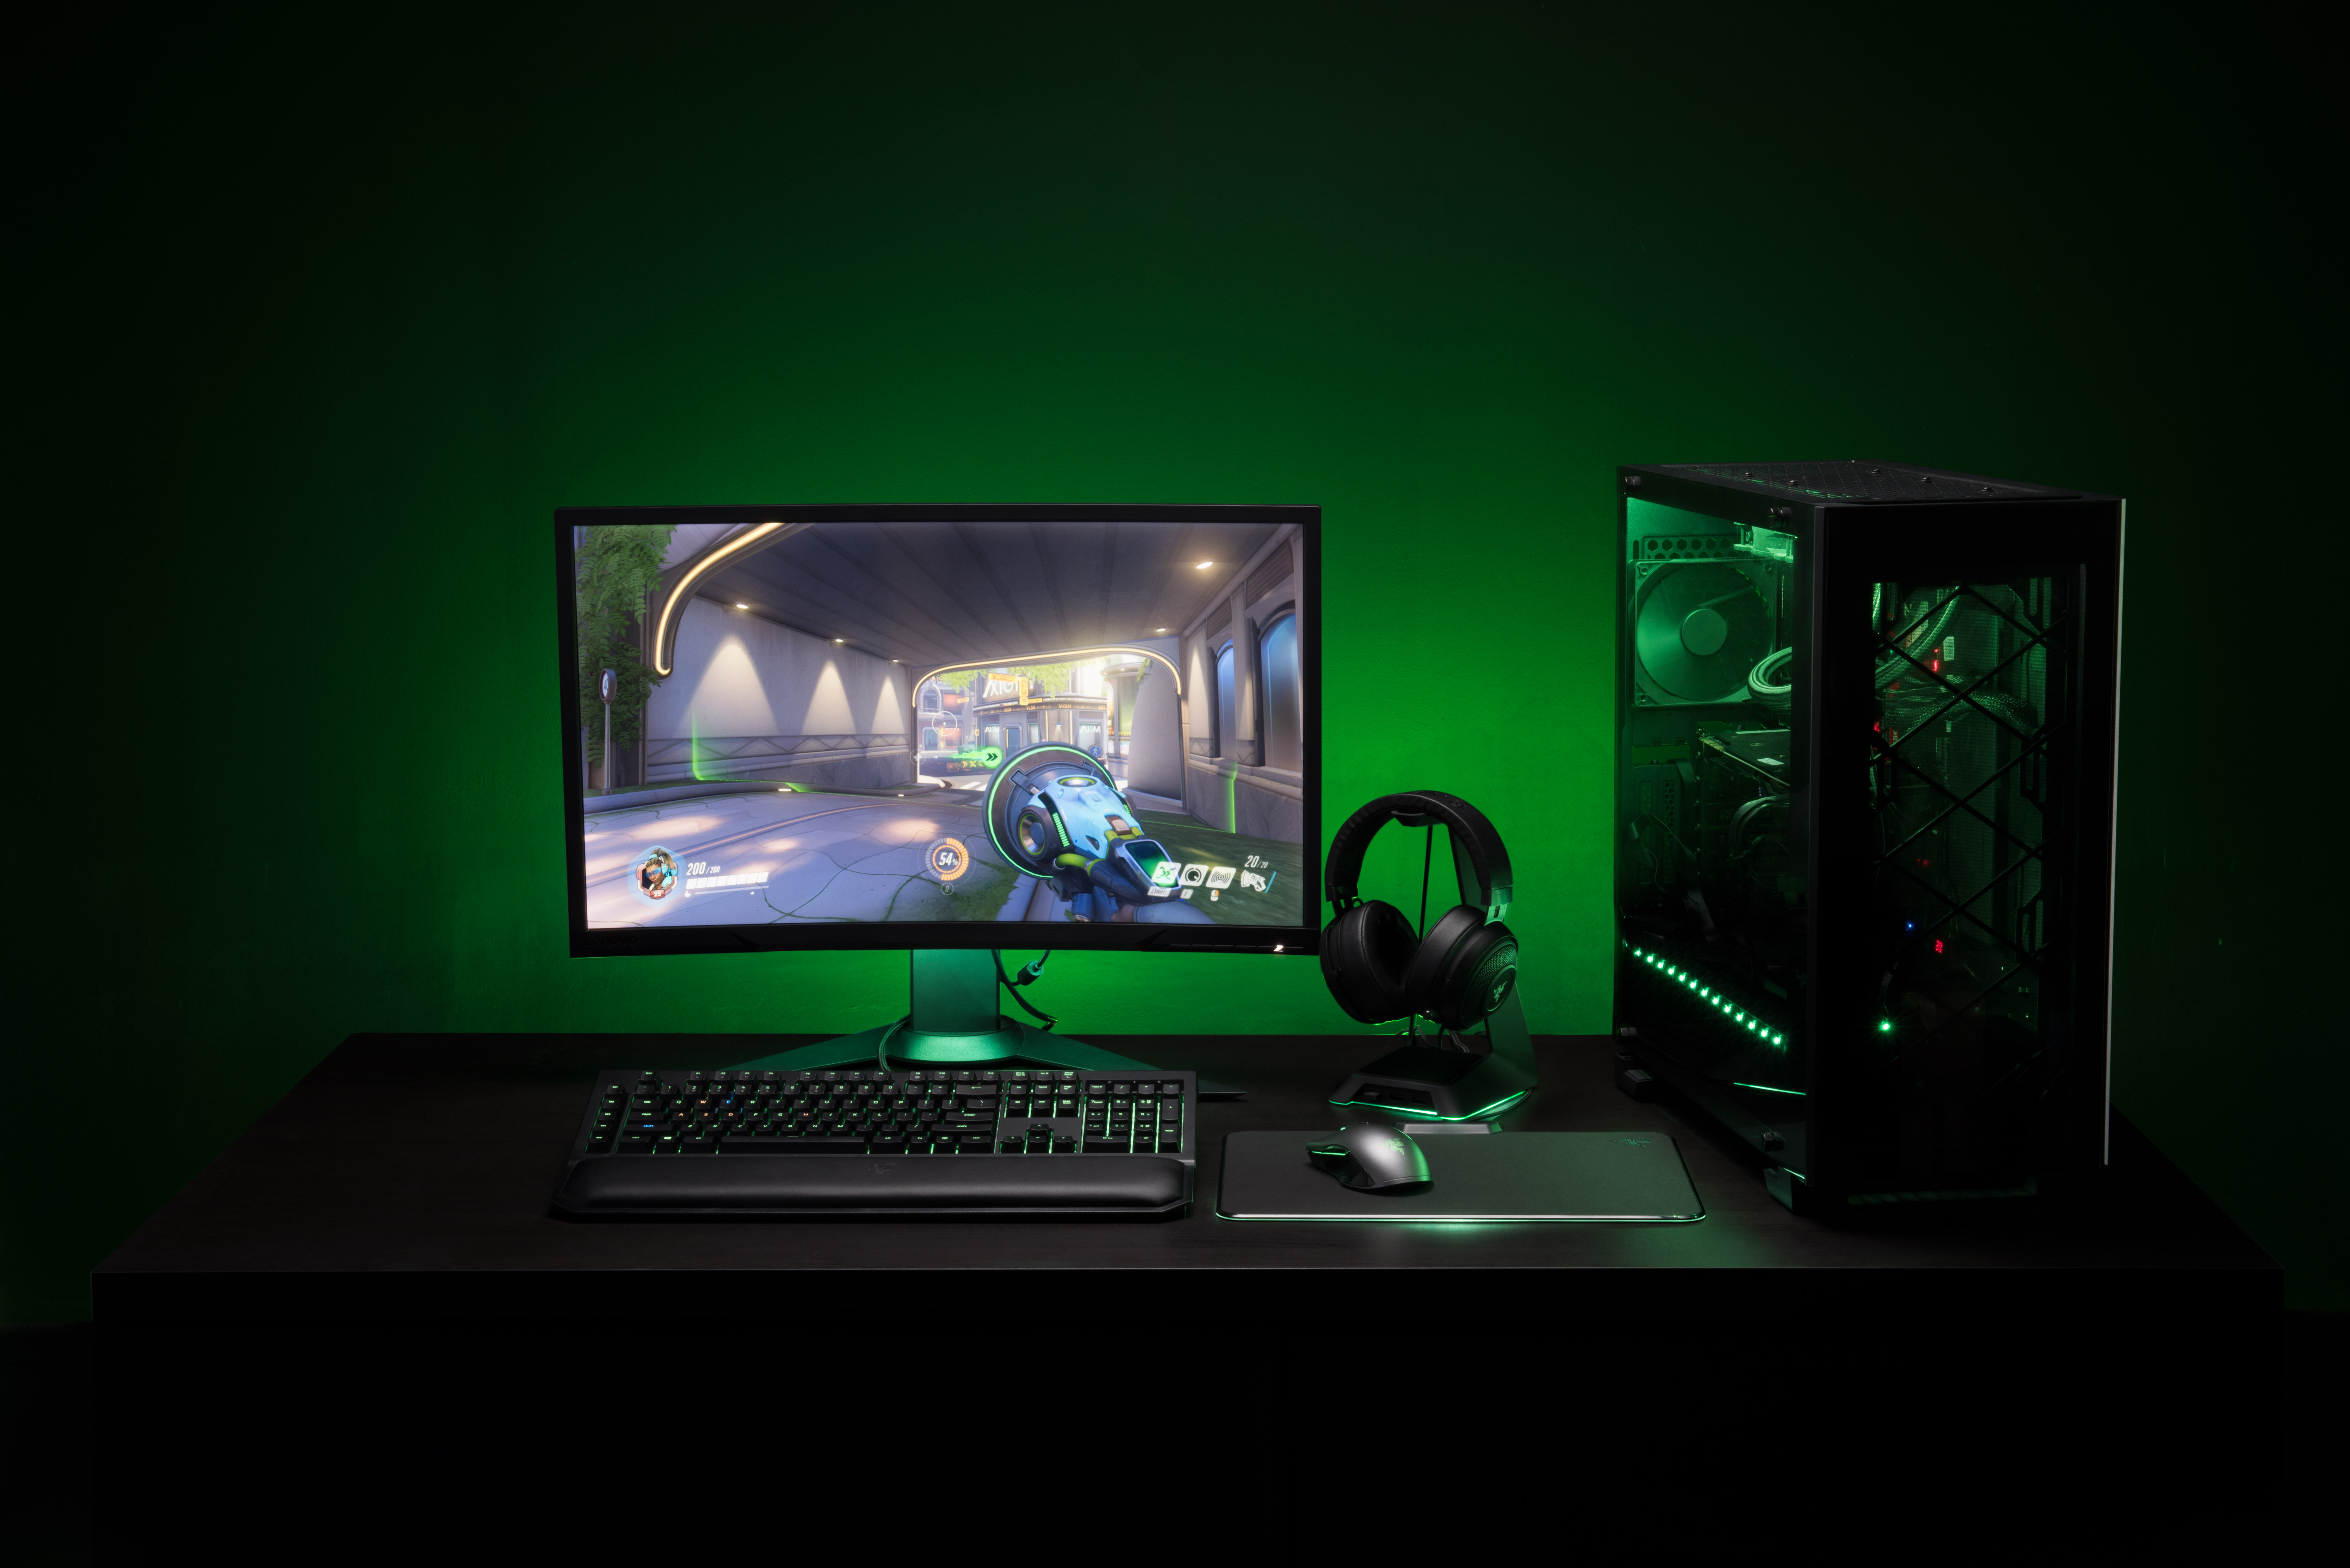 Philips Lighting and Razer join forces to create a powerful